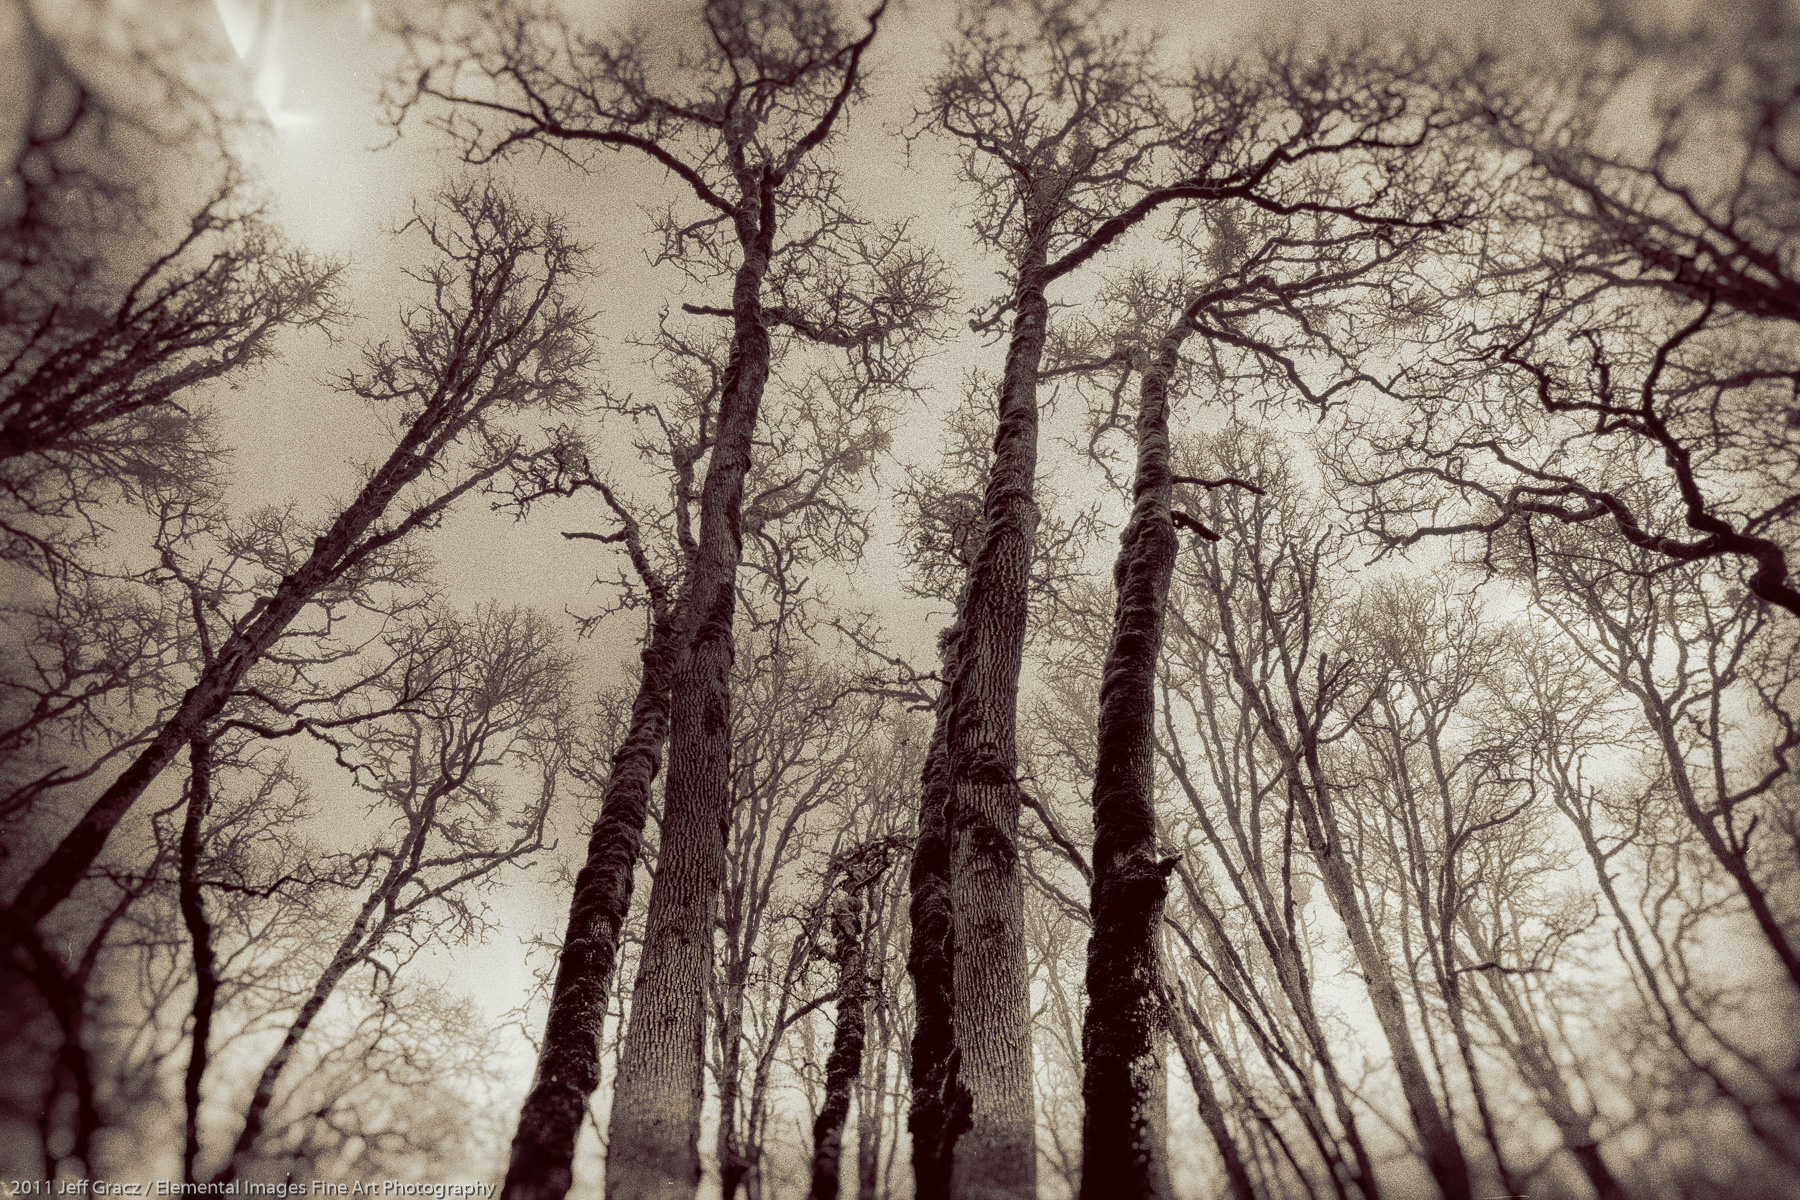 Branches XVII |  | OR | USA - © 2011 Jeff Gracz / Elemental Images Fine Art Photography - All Rights Reserved Worldwide